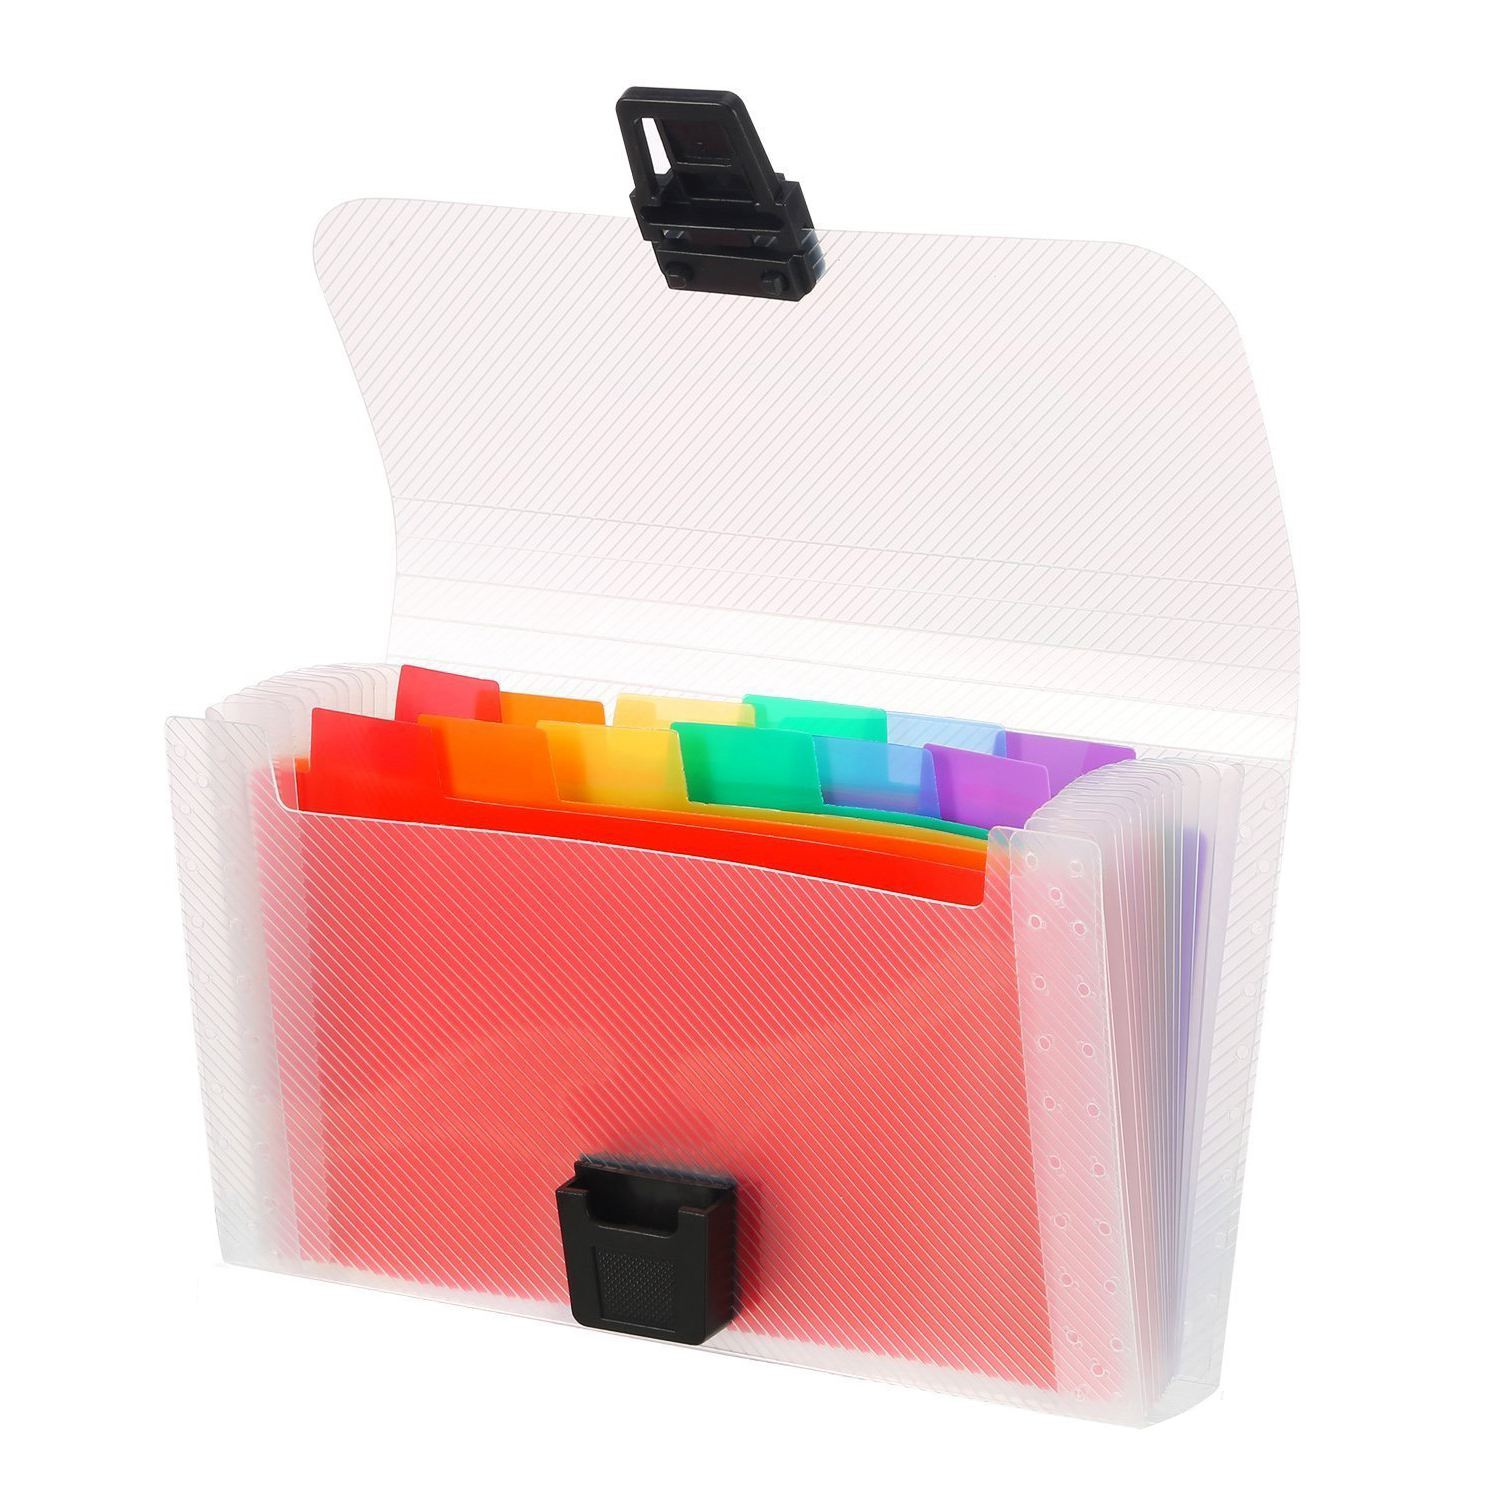 4 Pack Mini Document File A6 7.1 x 4.45 x 1.1 Inch Rainbow Expanding Folder 13 Pocket File Organizer 12 Labels Index-SCLL трусы x file